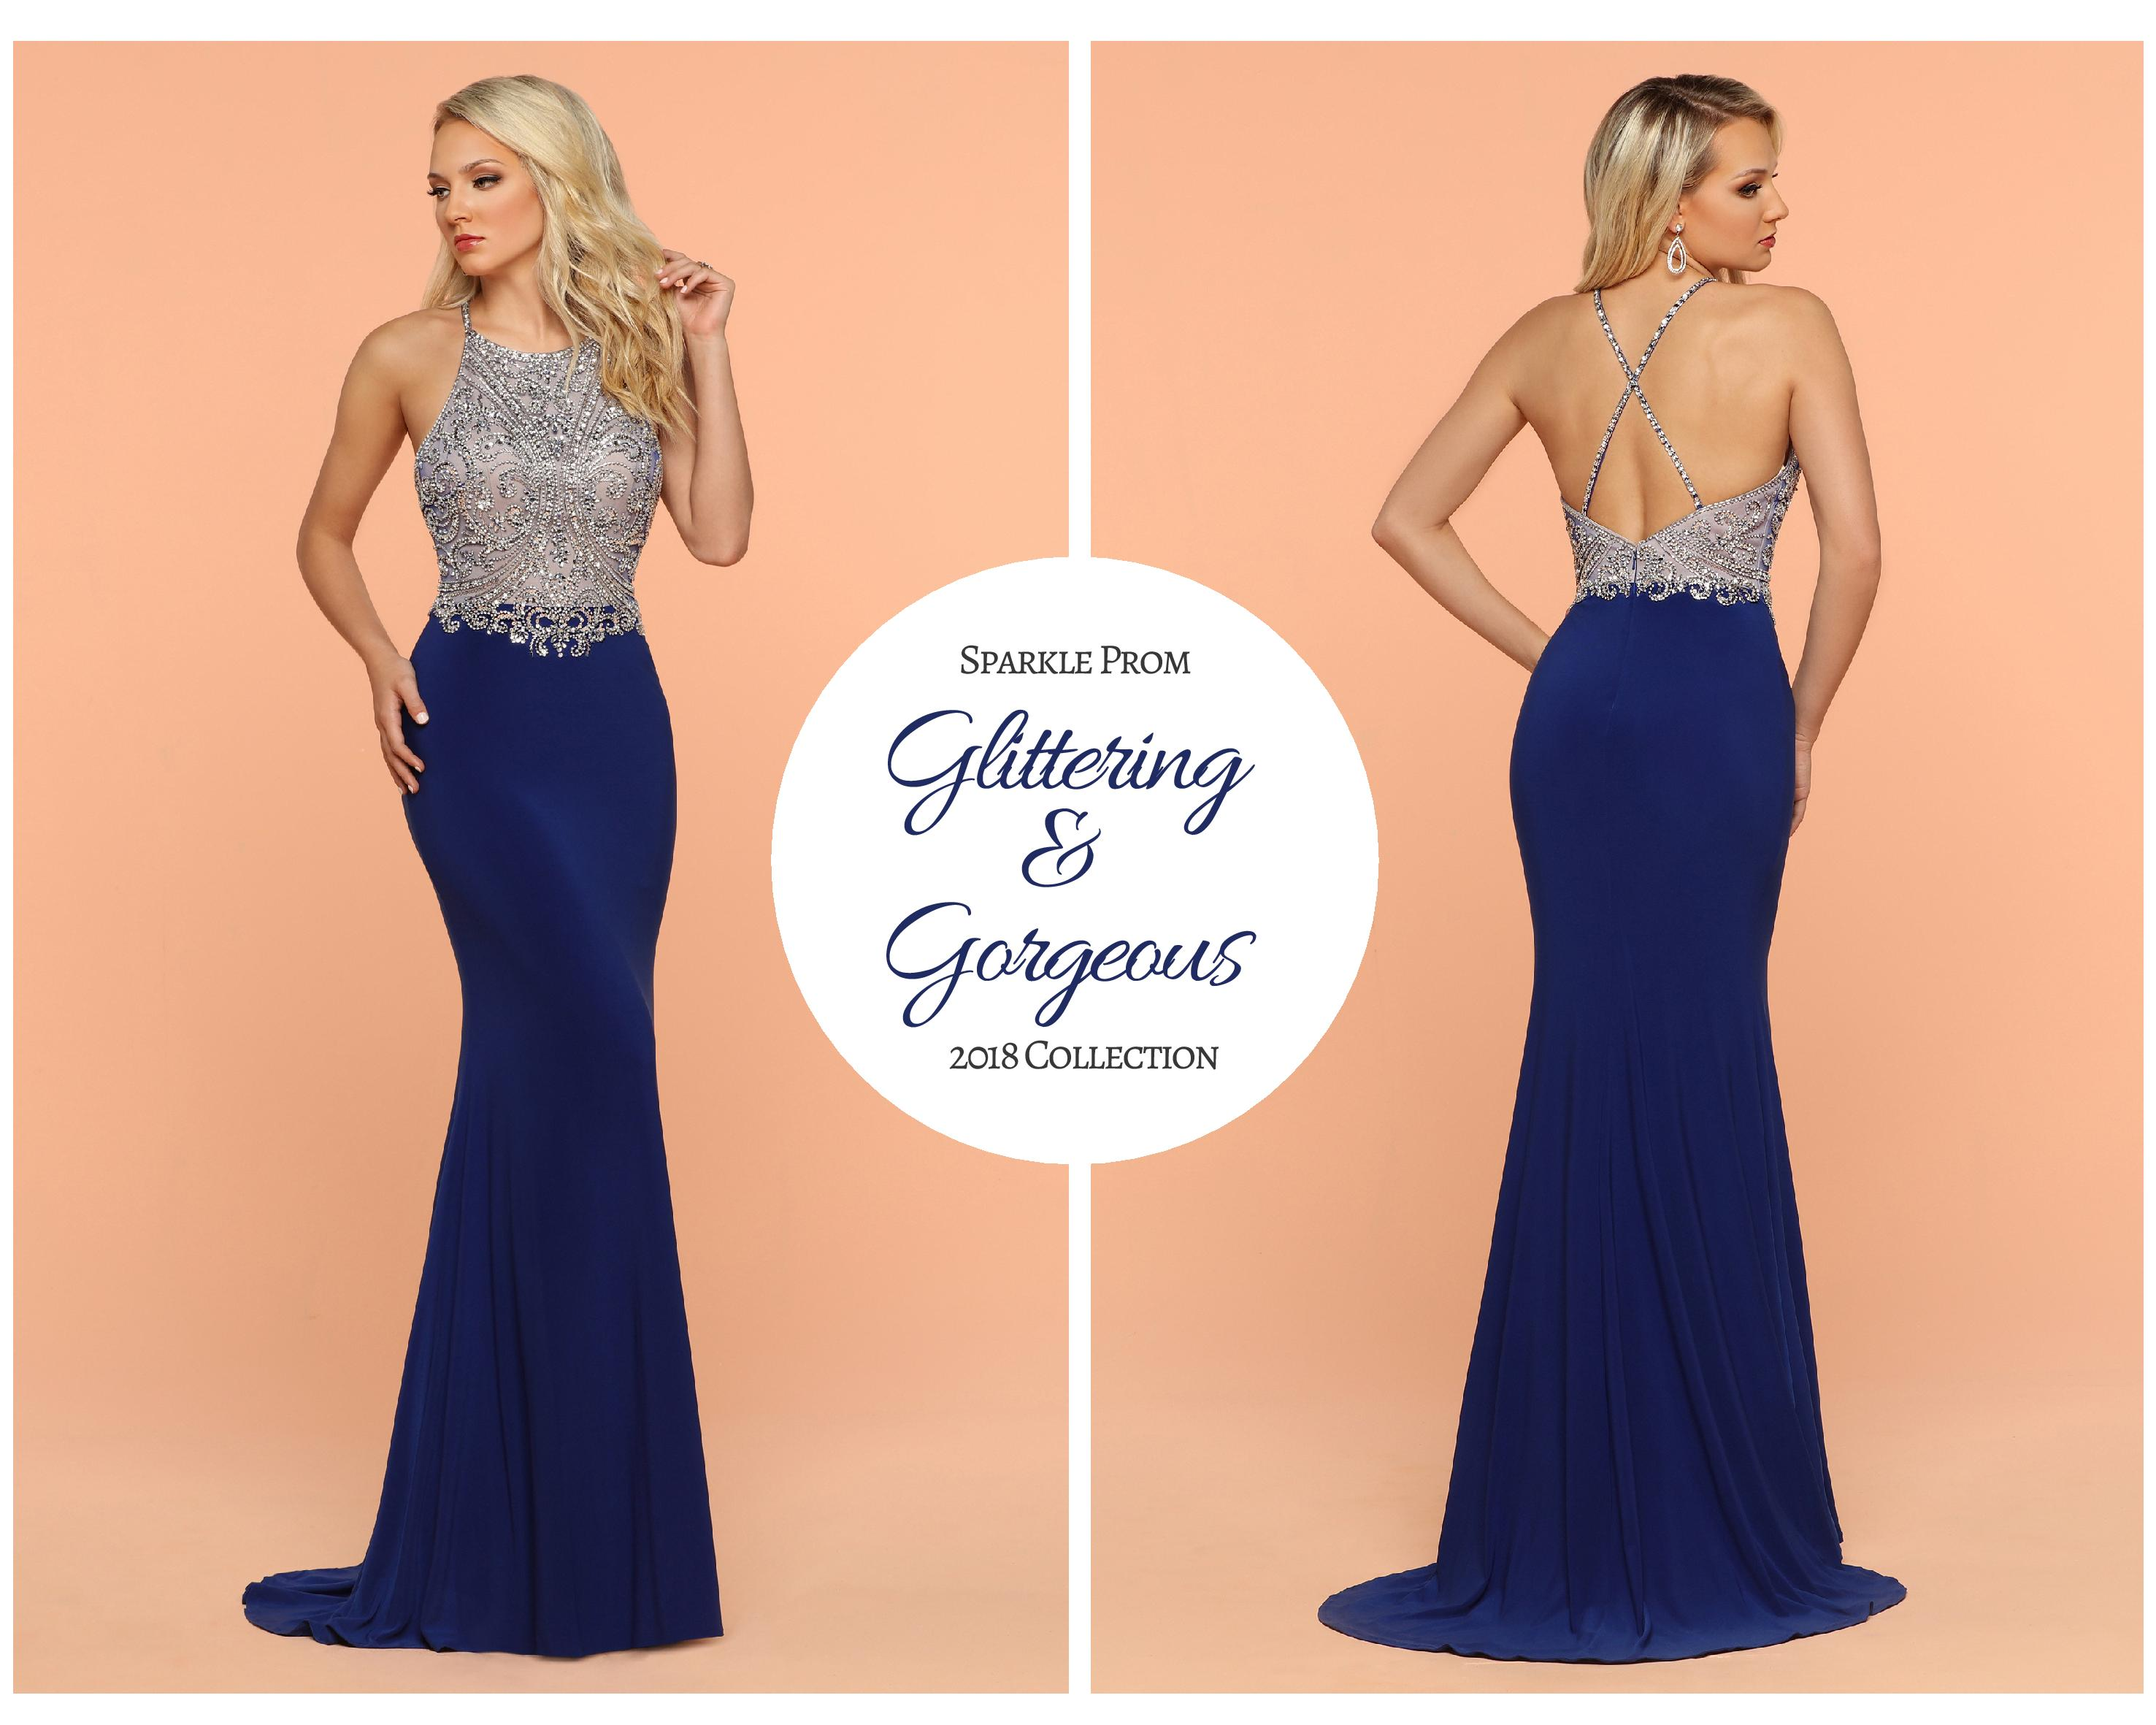 Glittering & Gorgeous in 2018: Prom Gowns with Bodice Detail – New Sparkle Prom Dresses